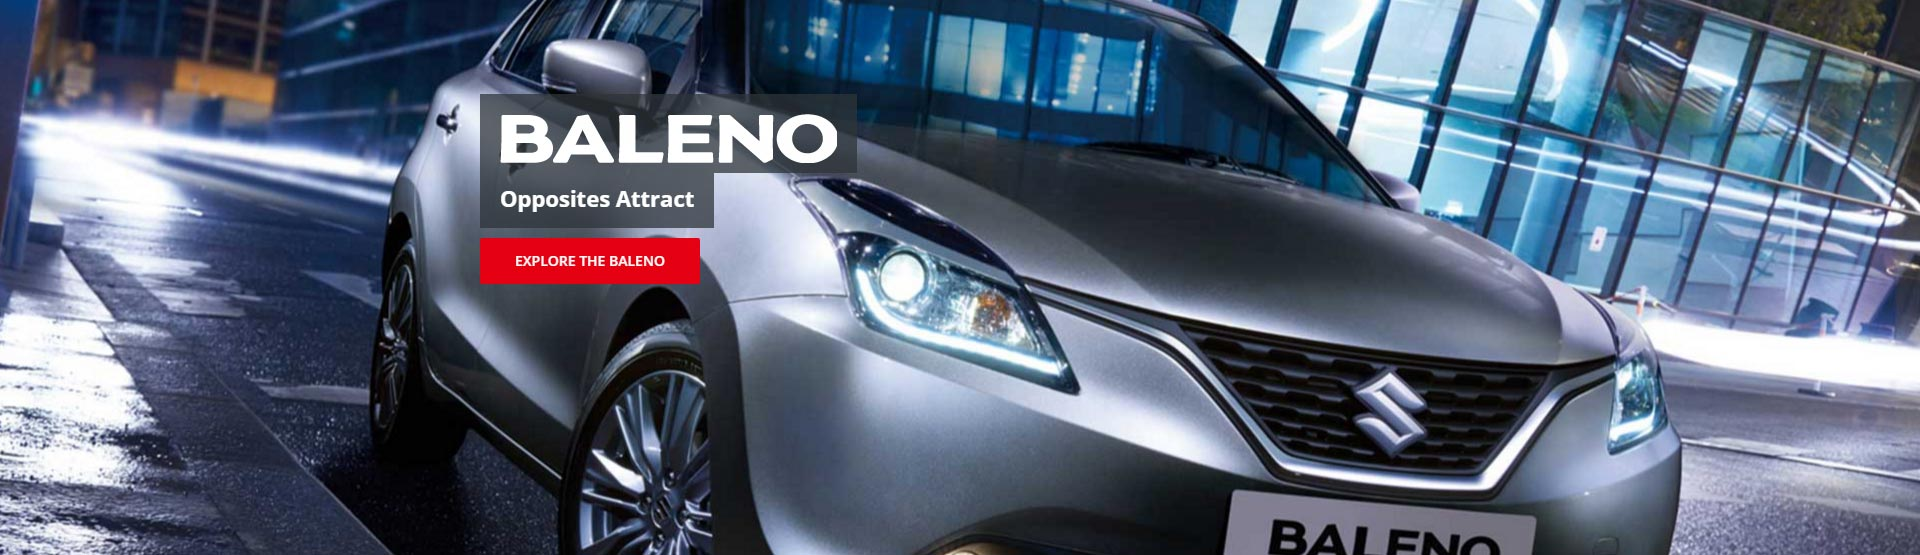 All-new Suzuki Baleno hatch, where space meets style. Explore the Baleno at Redcliffe Suzuki Brisbane.